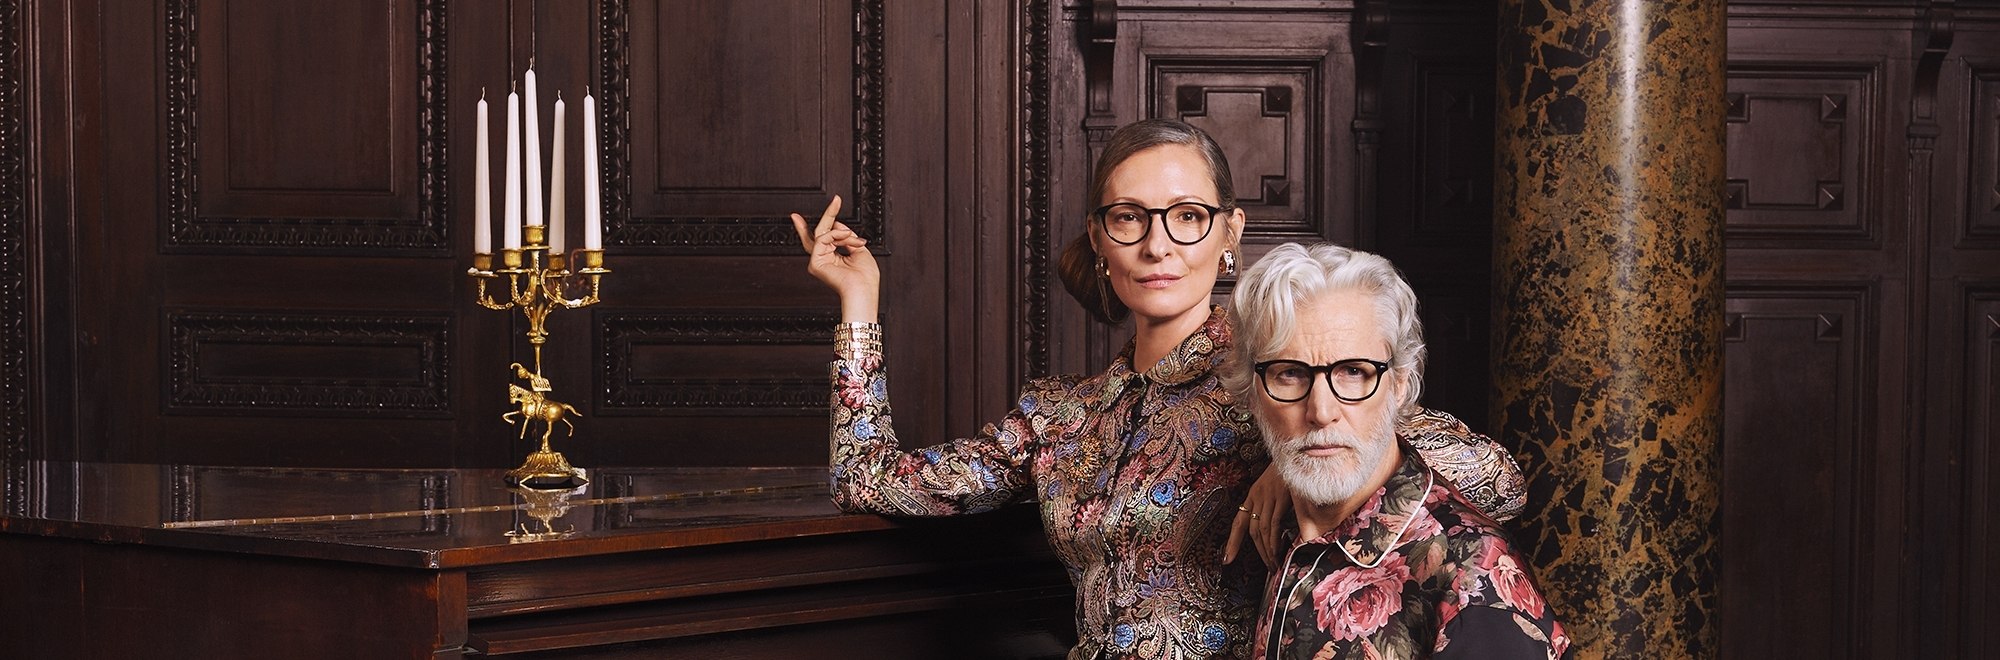 'They're Boots Darling' showcases the unexpected in the new campaign for Boots Opticians by Ogilvy